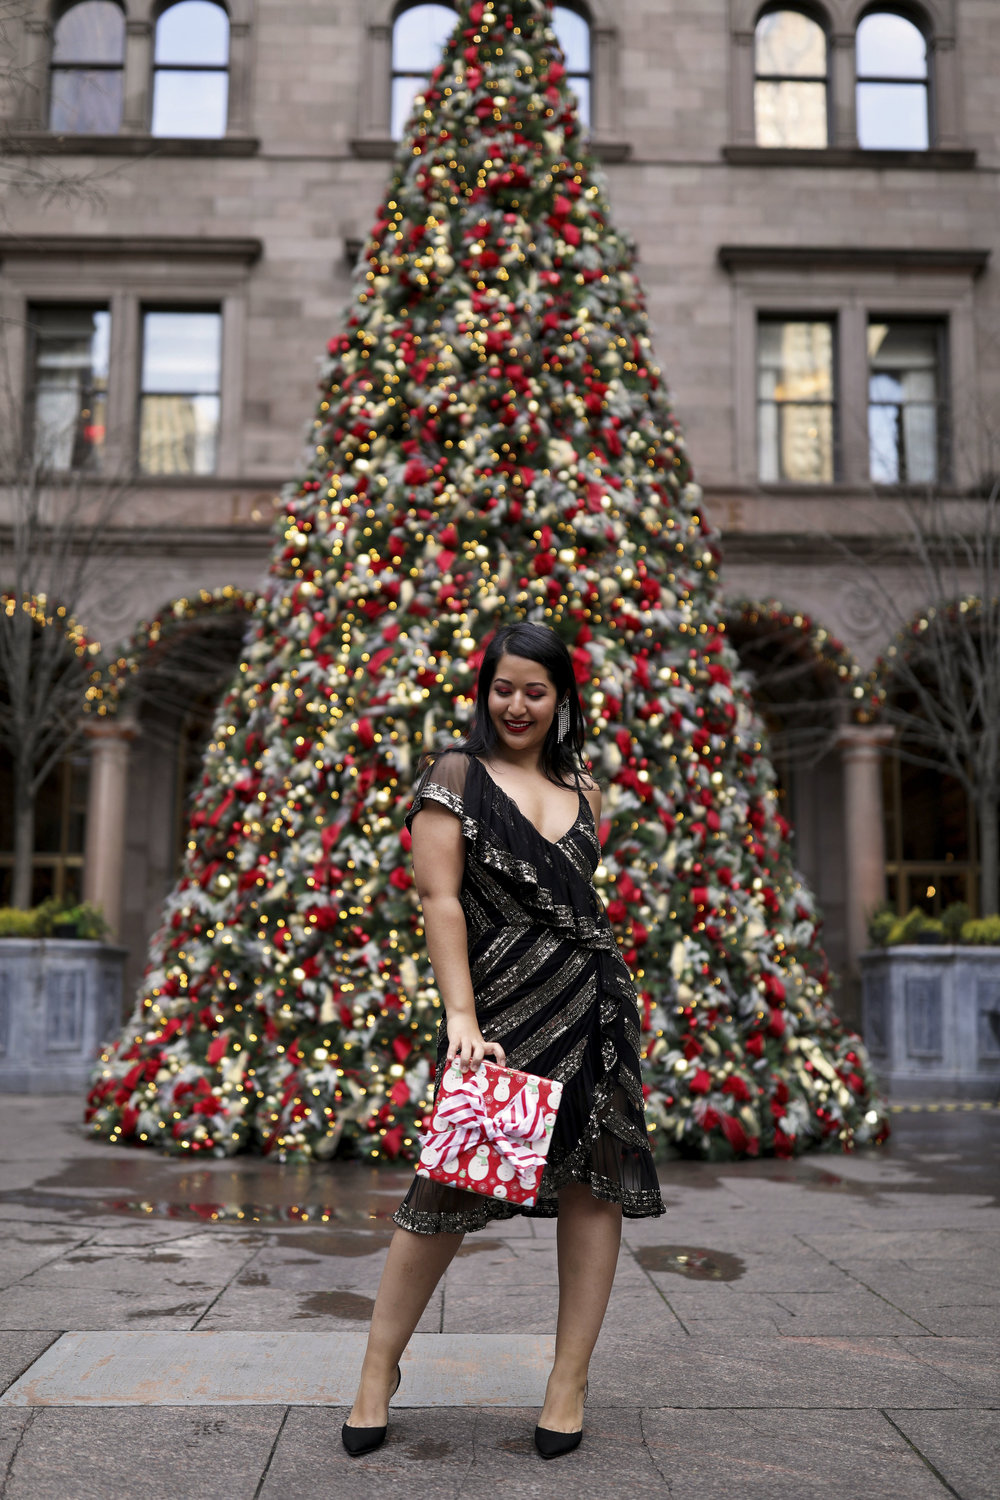 Krity S x Christmas Outfit x Beaded Short Dress10.jpg